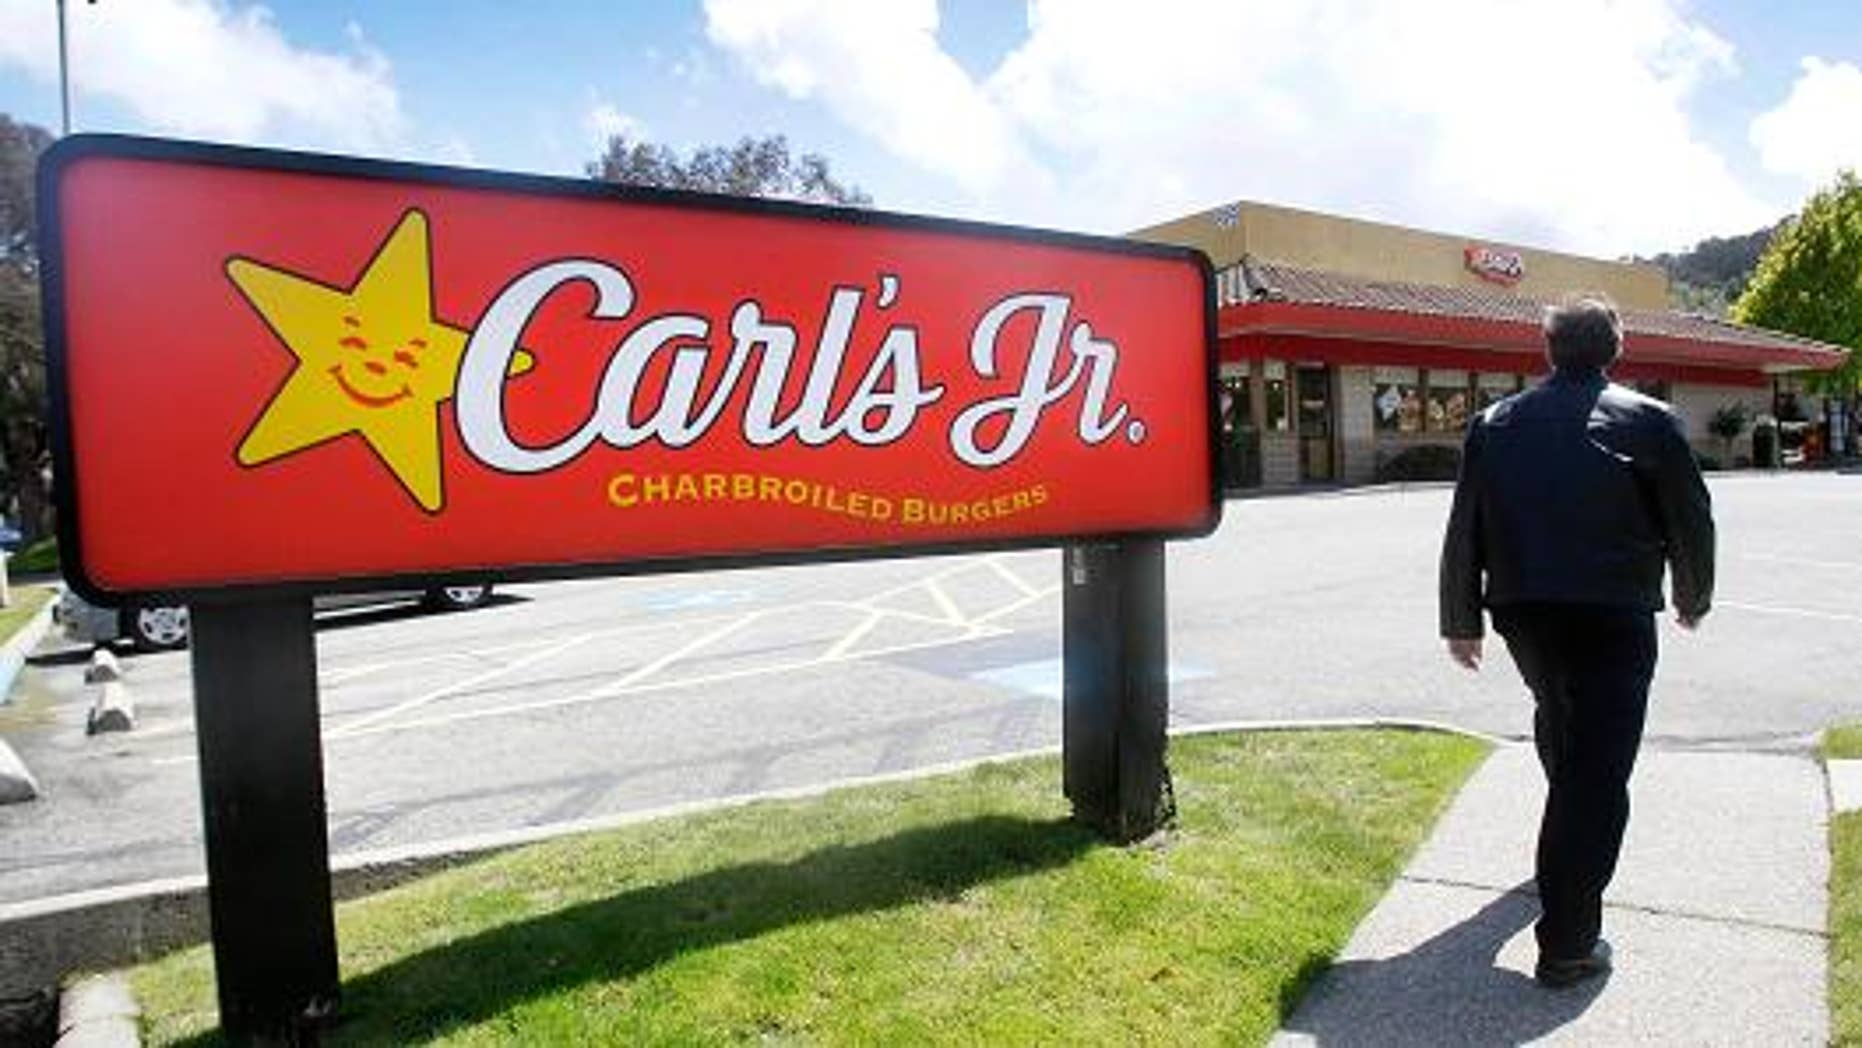 Carl's Jr may no longer be staffed by humans in the not-too-distant future.